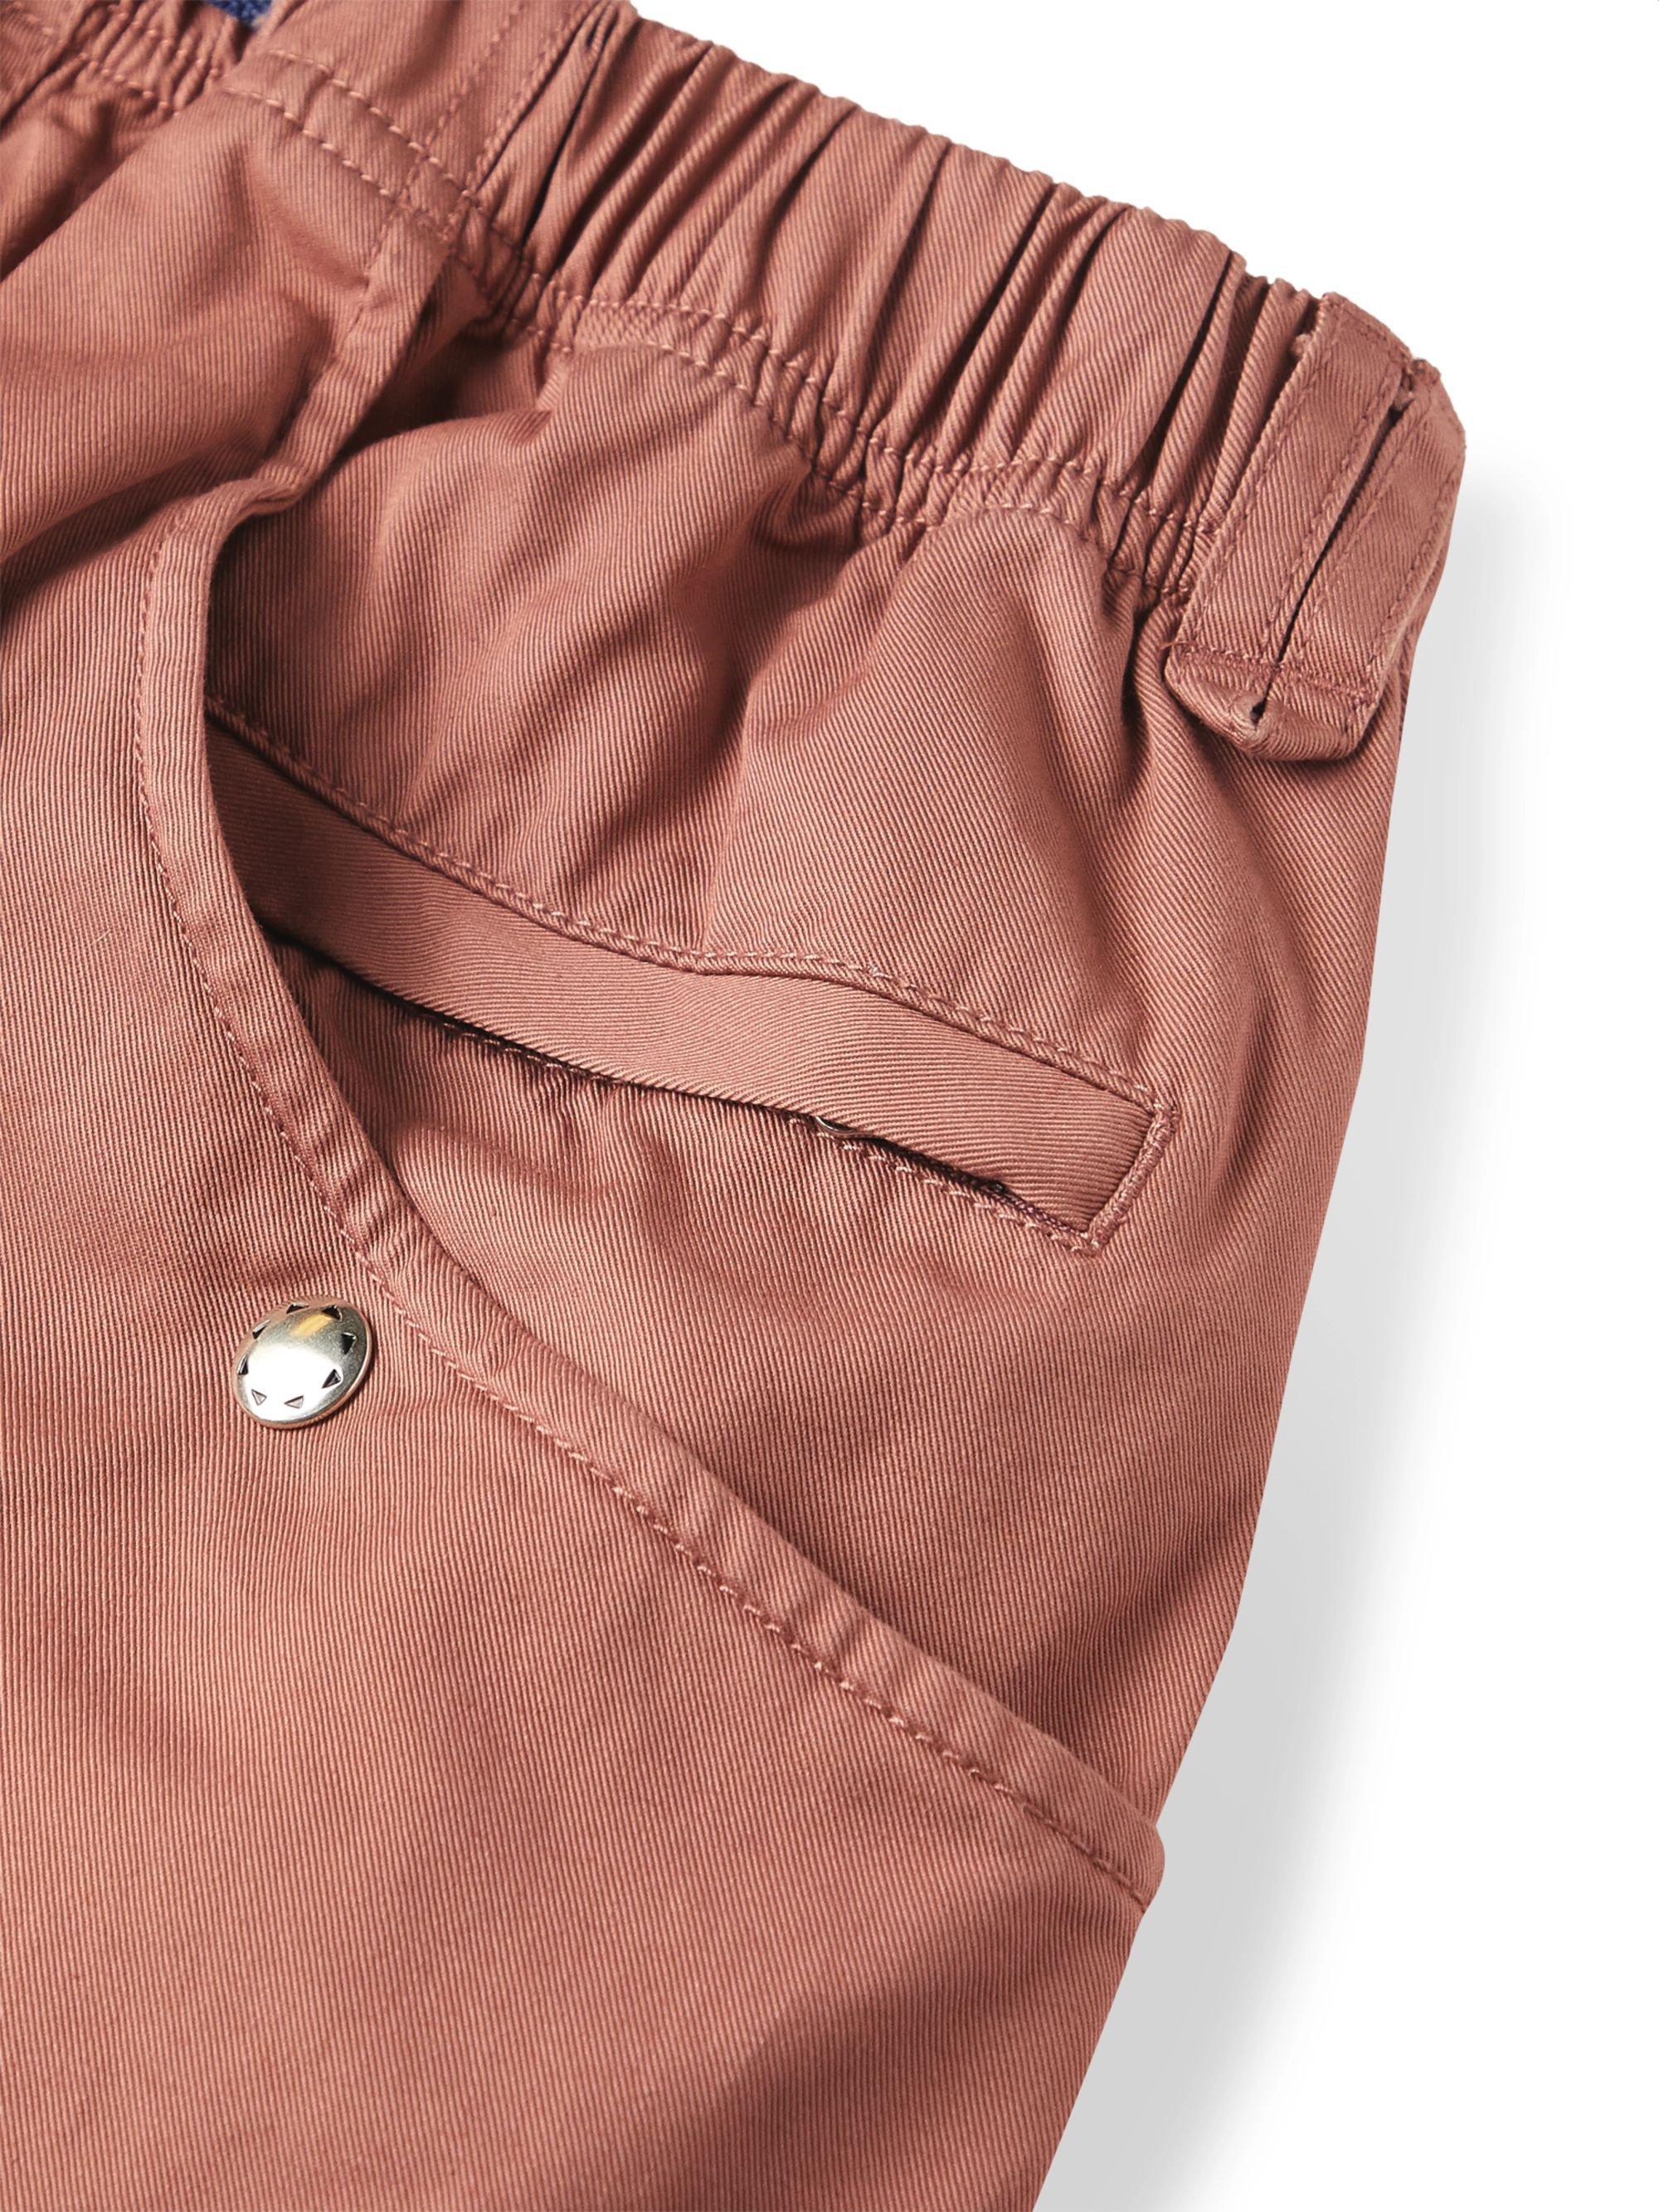 Pilgrim Surf + Supply Salathe Belted Cotton-Twill Climbing Shorts